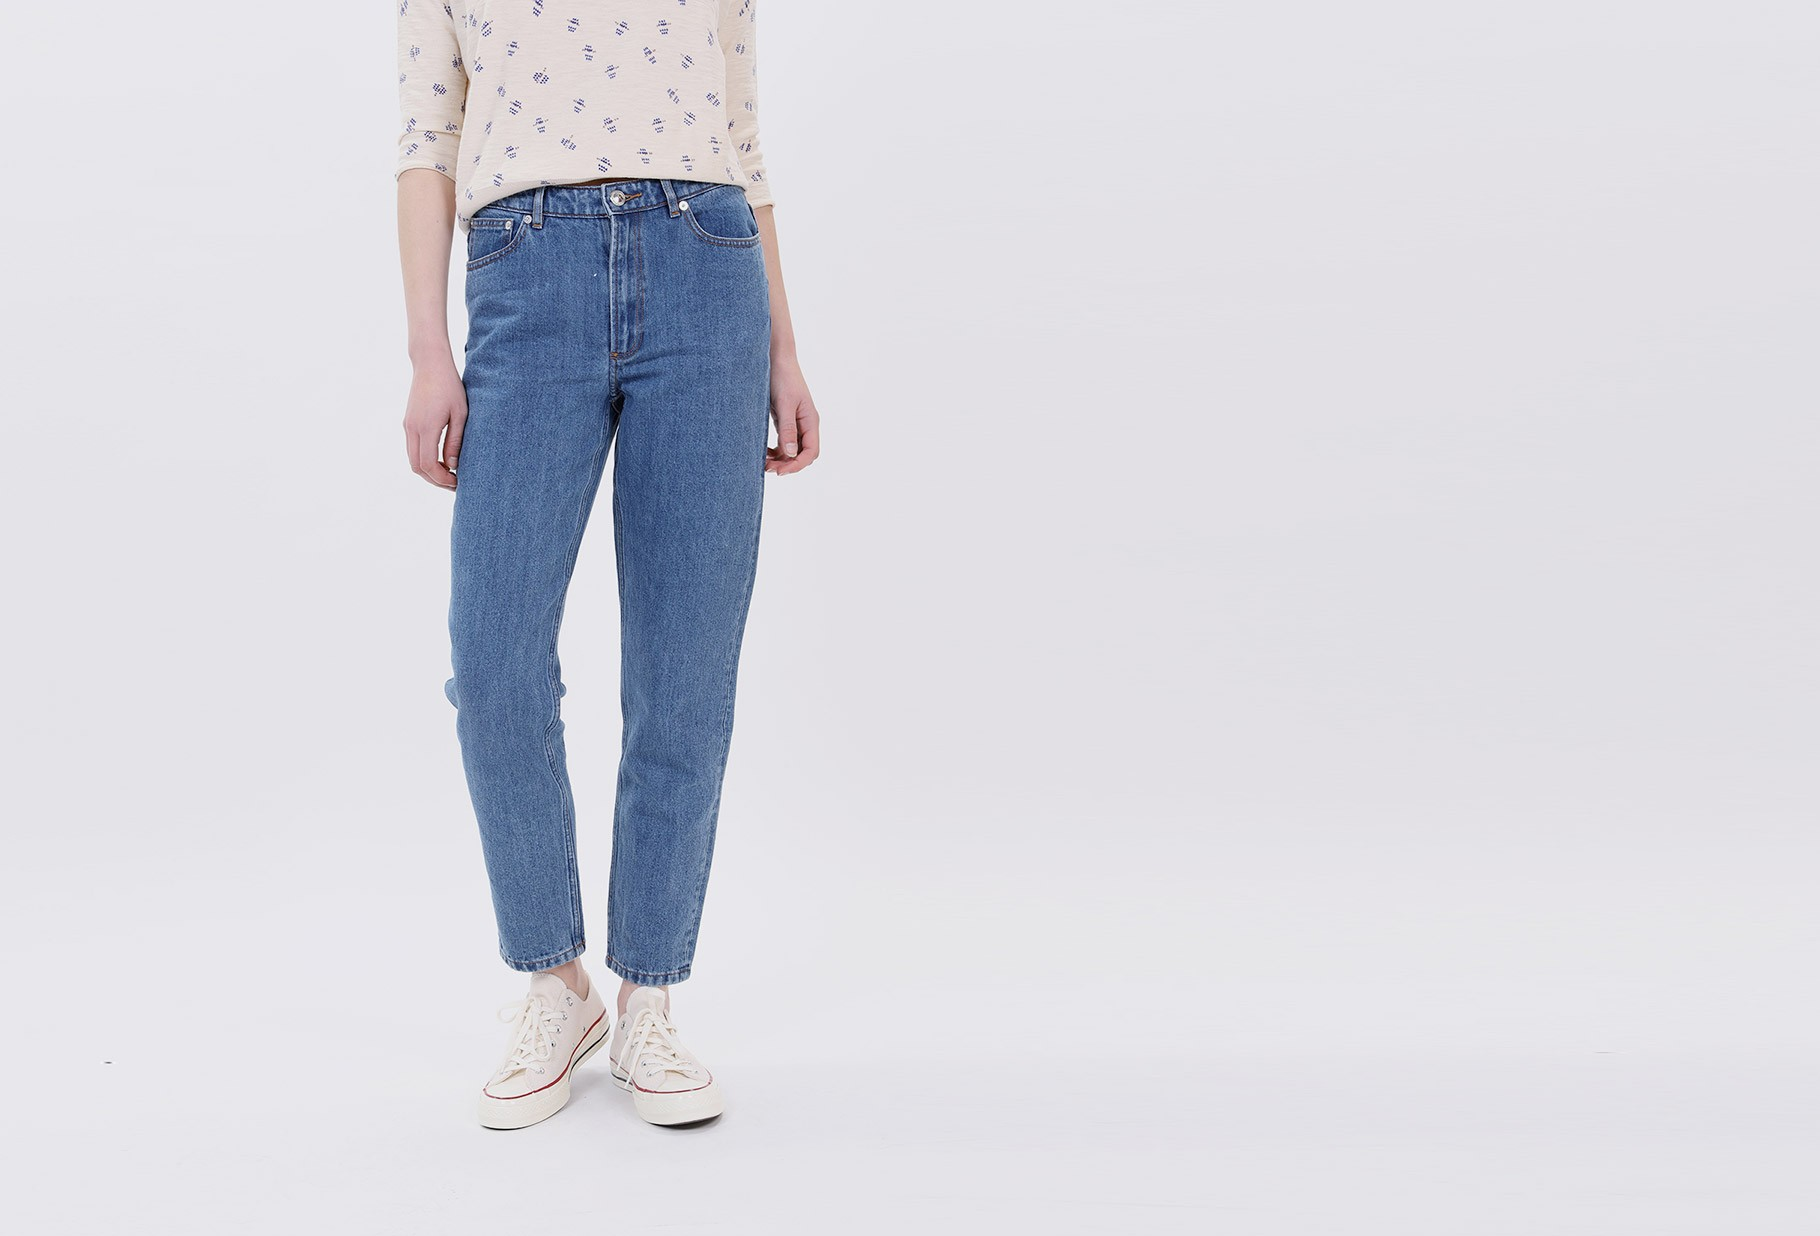 A.P.C. FOR WOMAN / Jean 80s